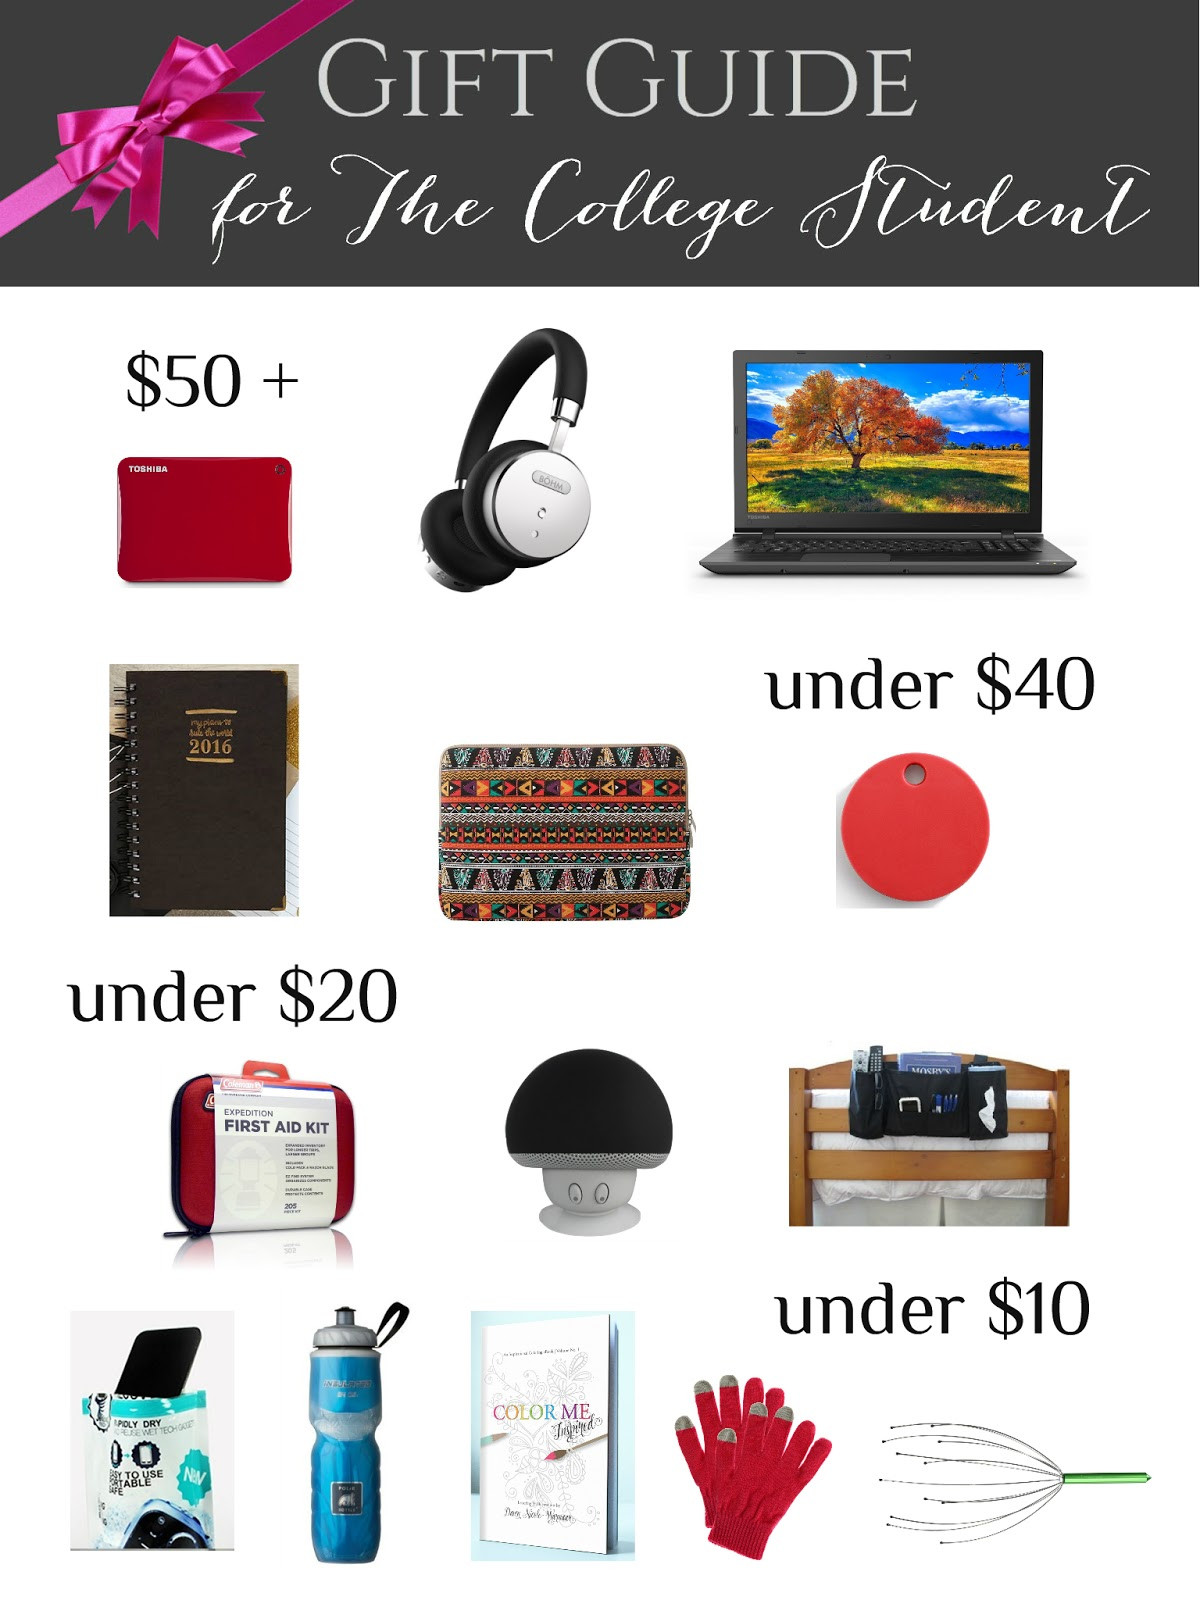 Best ideas about Gift Ideas For College Students . Save or Pin College Student Gift Guide Now.